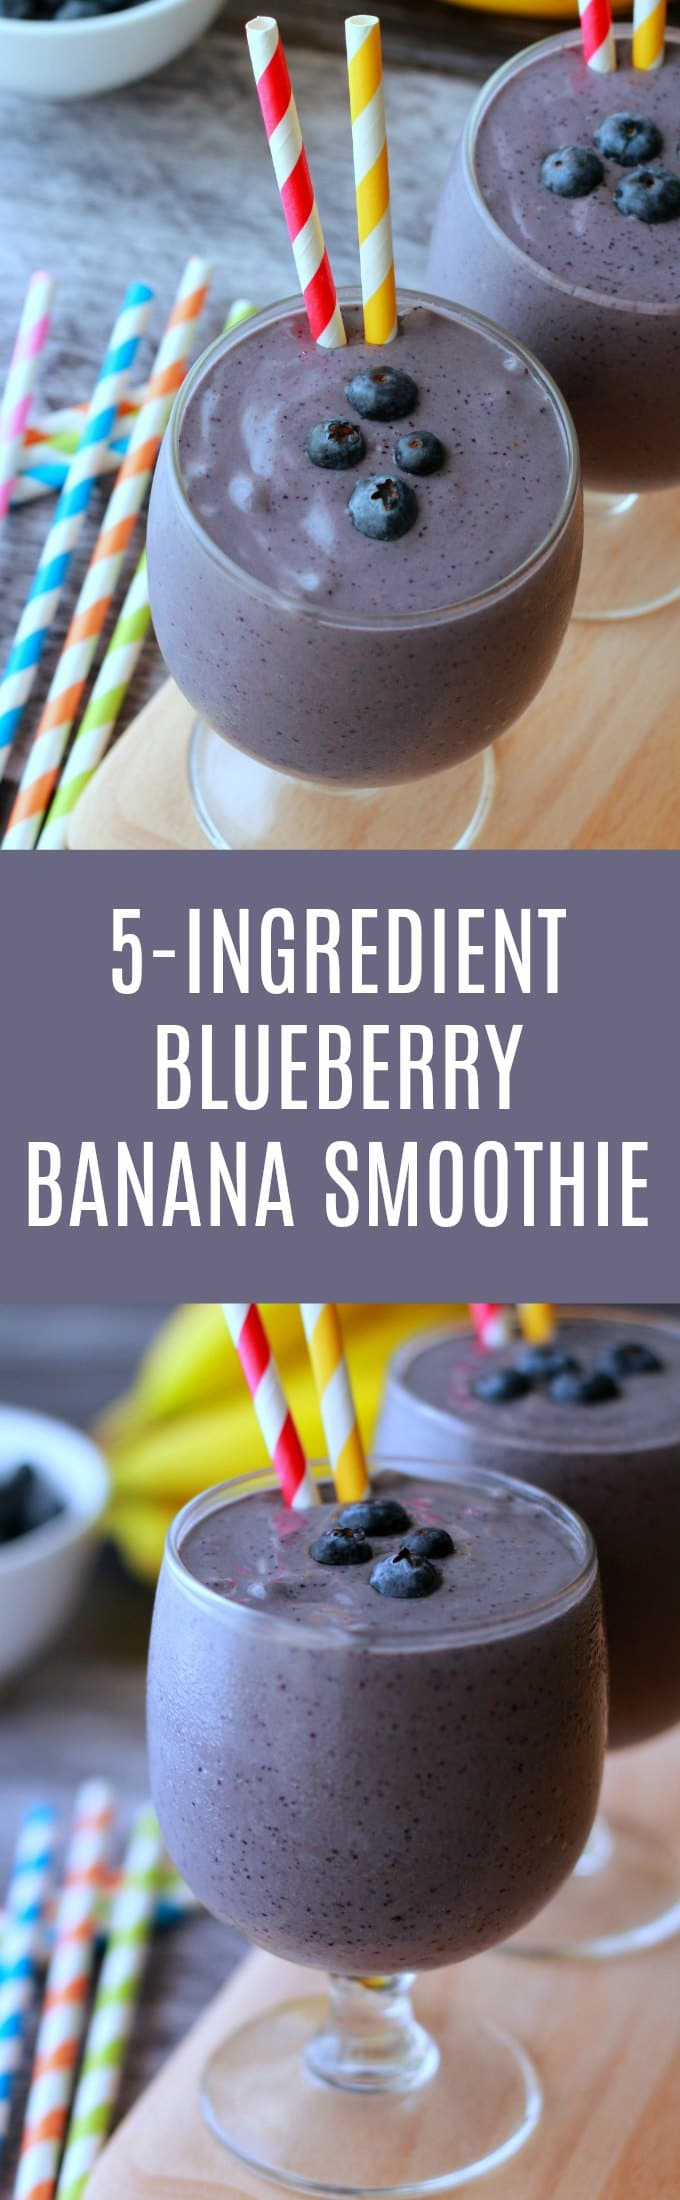 Creamy blueberry banana smoothie with peanut butter! 5-ingredients, ready in 10 minutes and perfect as a breakfast power shake! Vegan and Gluten-free. Vegan | Smoothies | Vegan Smoothies | Vegan Recipes | Vegan Breakfast | Gluten-Free Vegan | lovingitvegan.com